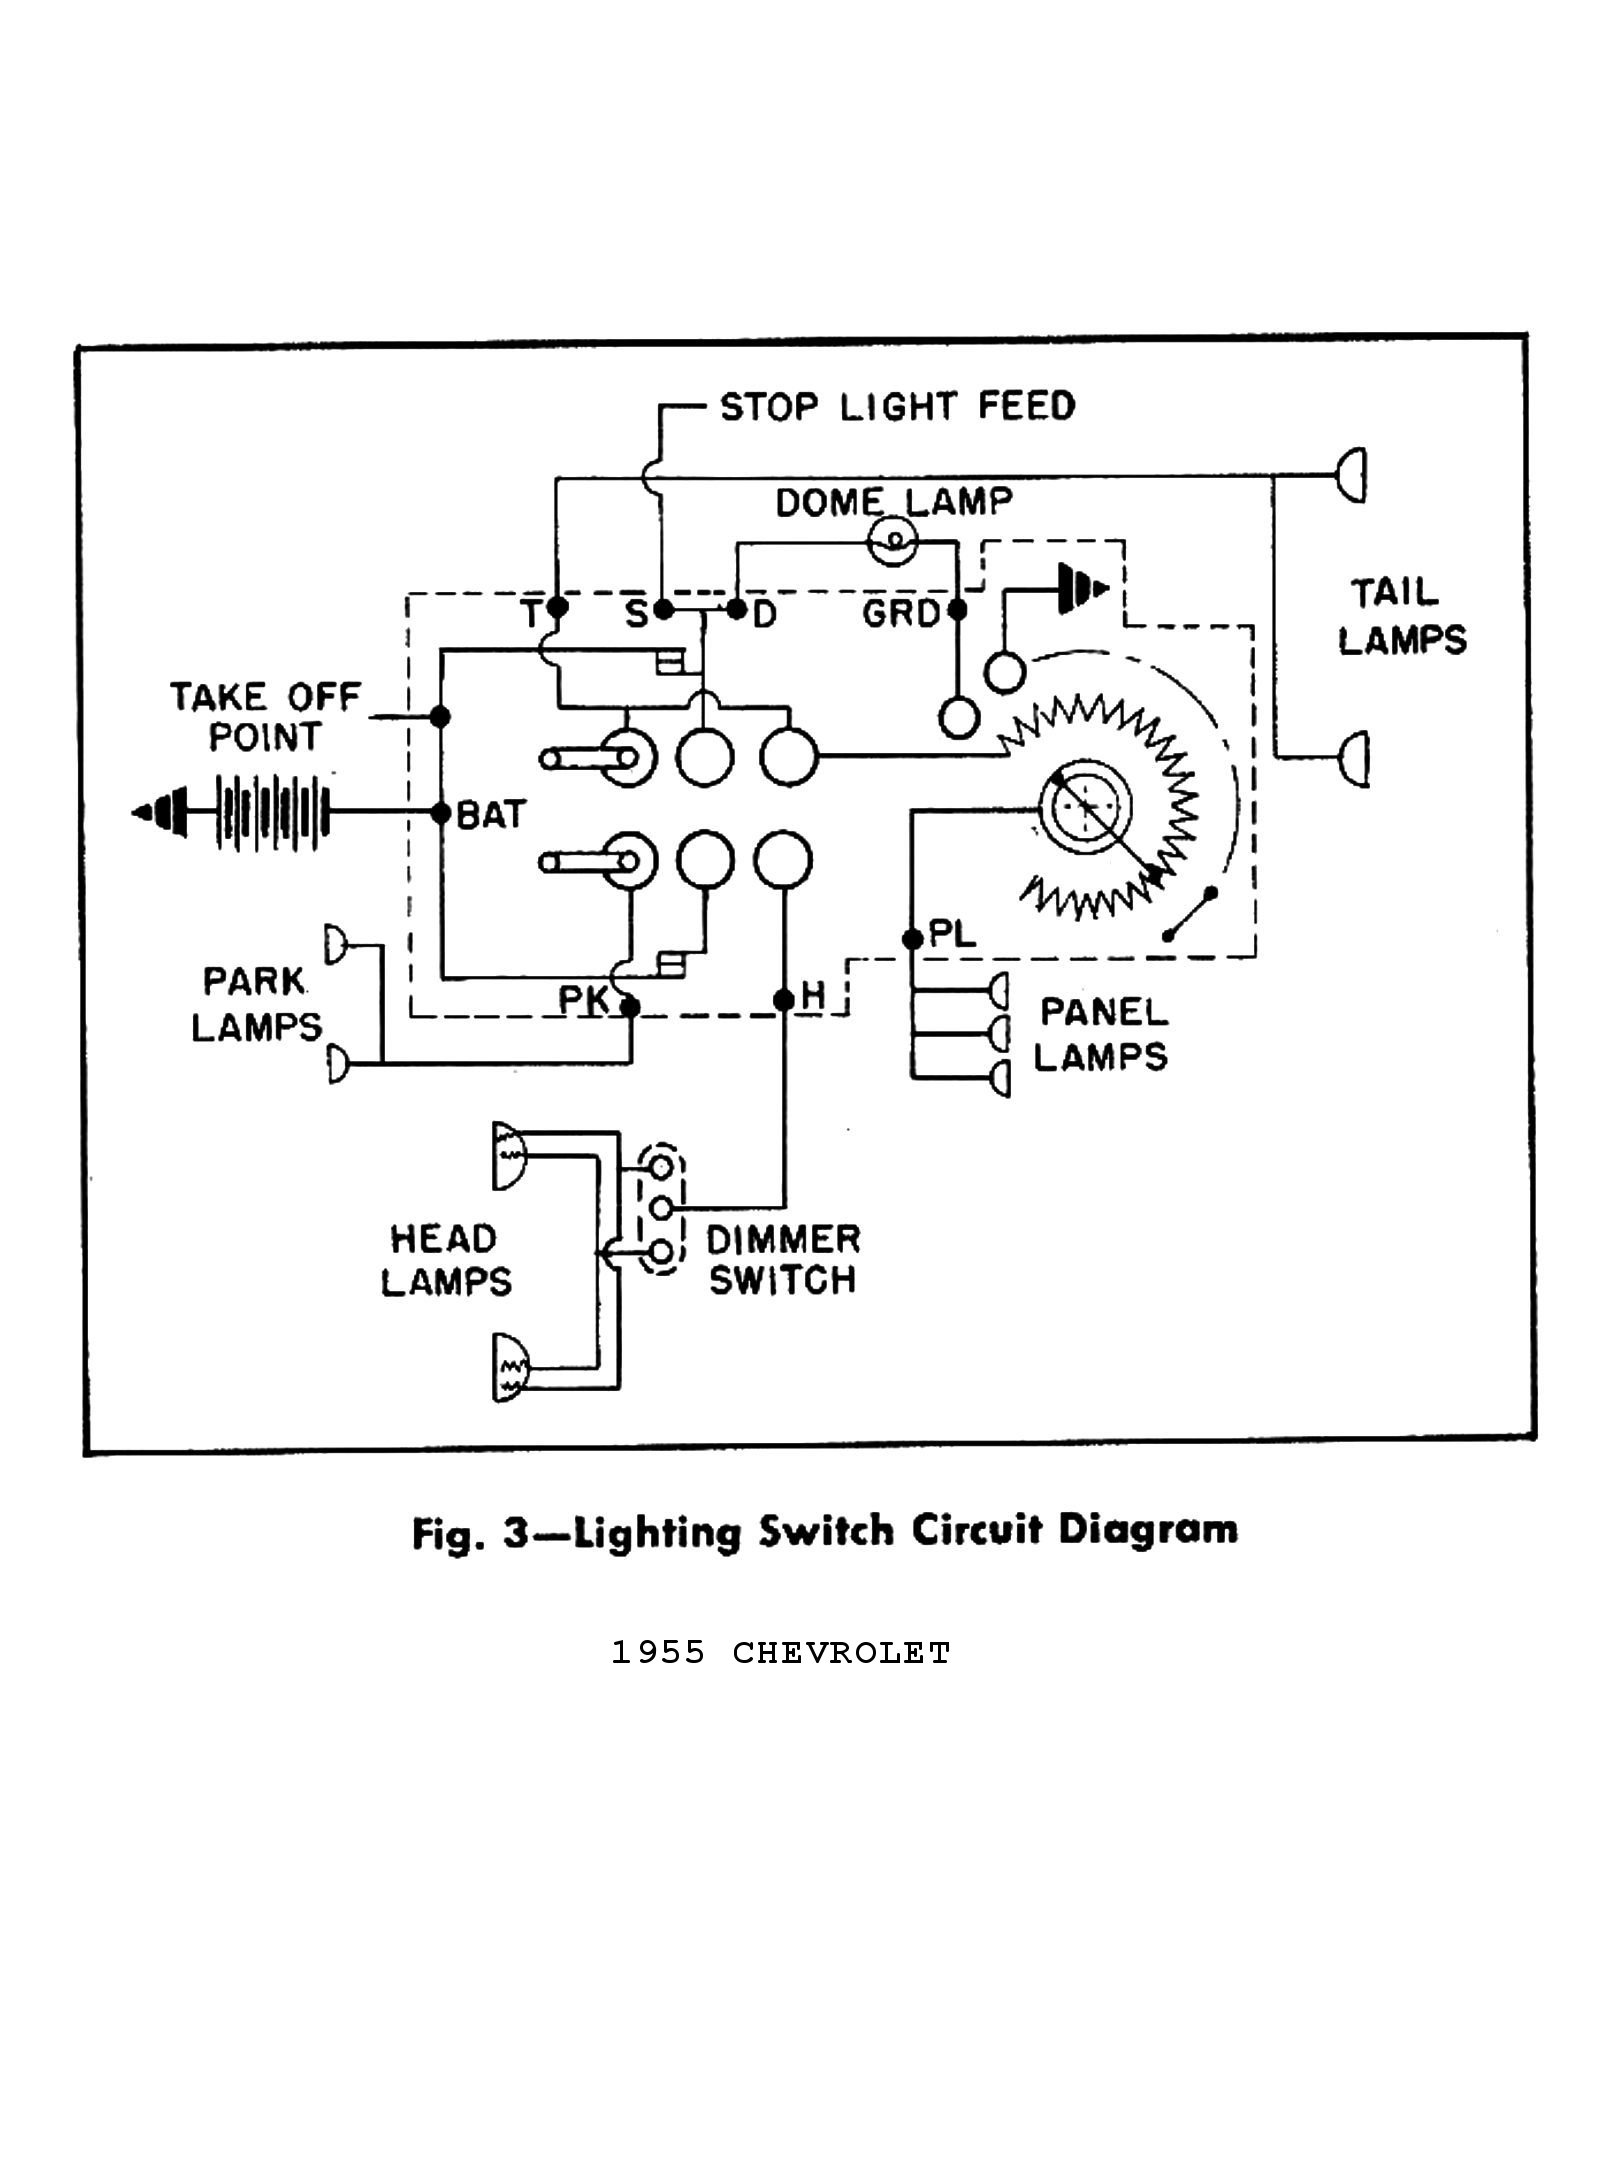 hight resolution of 1955 truck wiring diagrams 1955 electric windows seats 1955 lighting switch circuit chevy